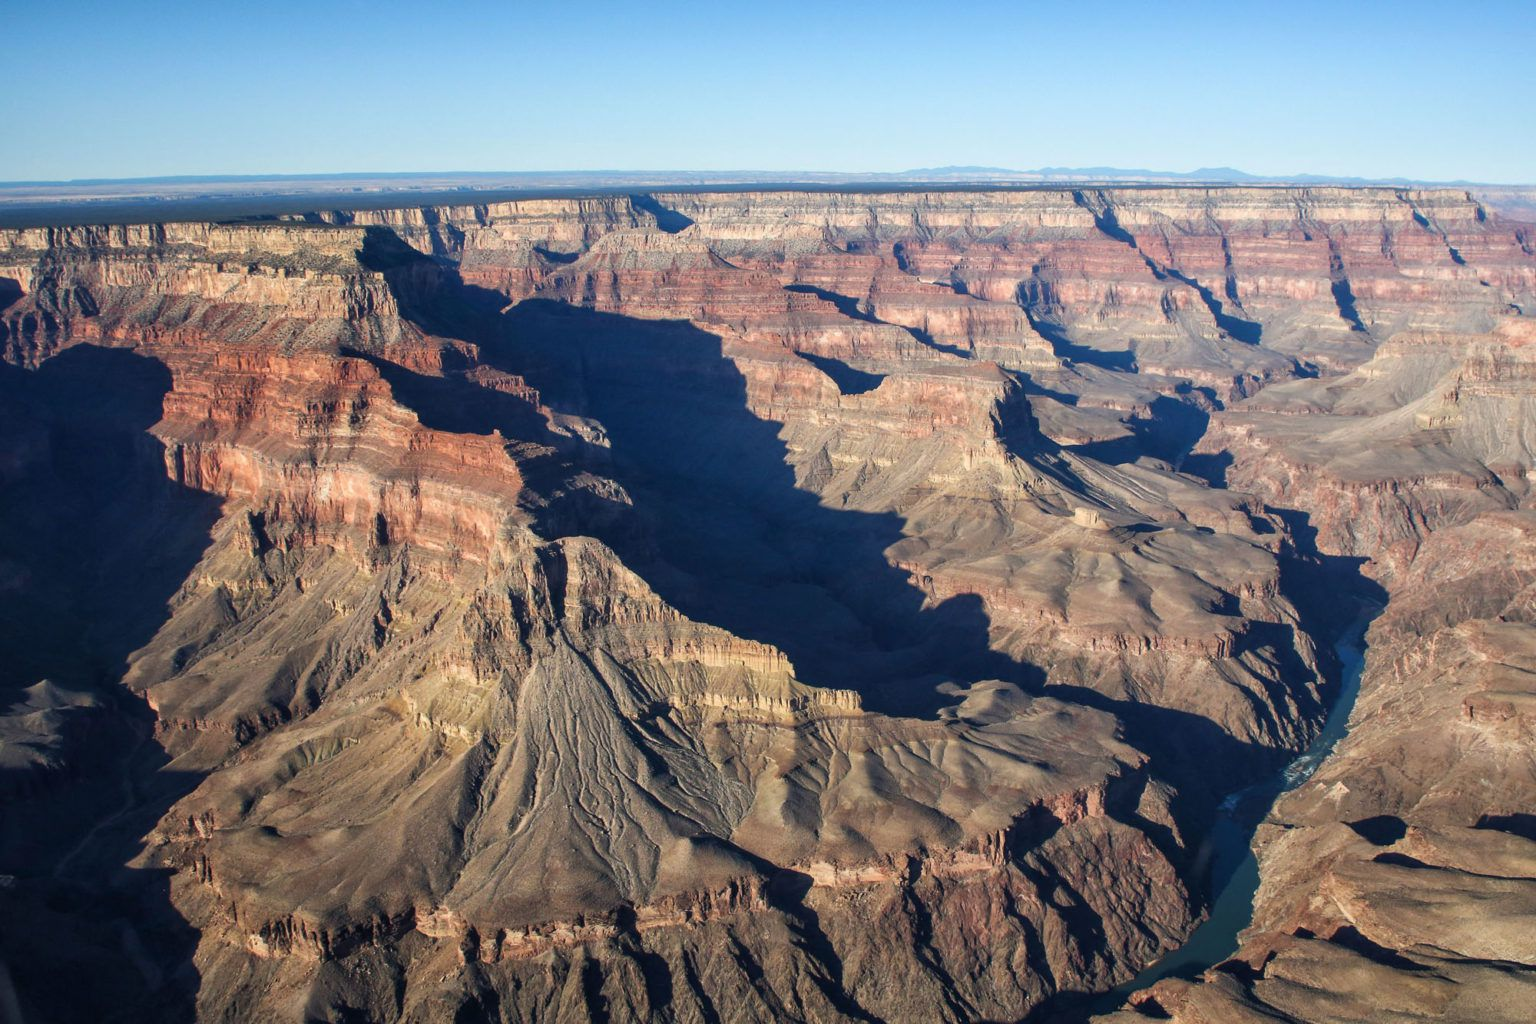 View of the Grand Canyon from a Helicopter